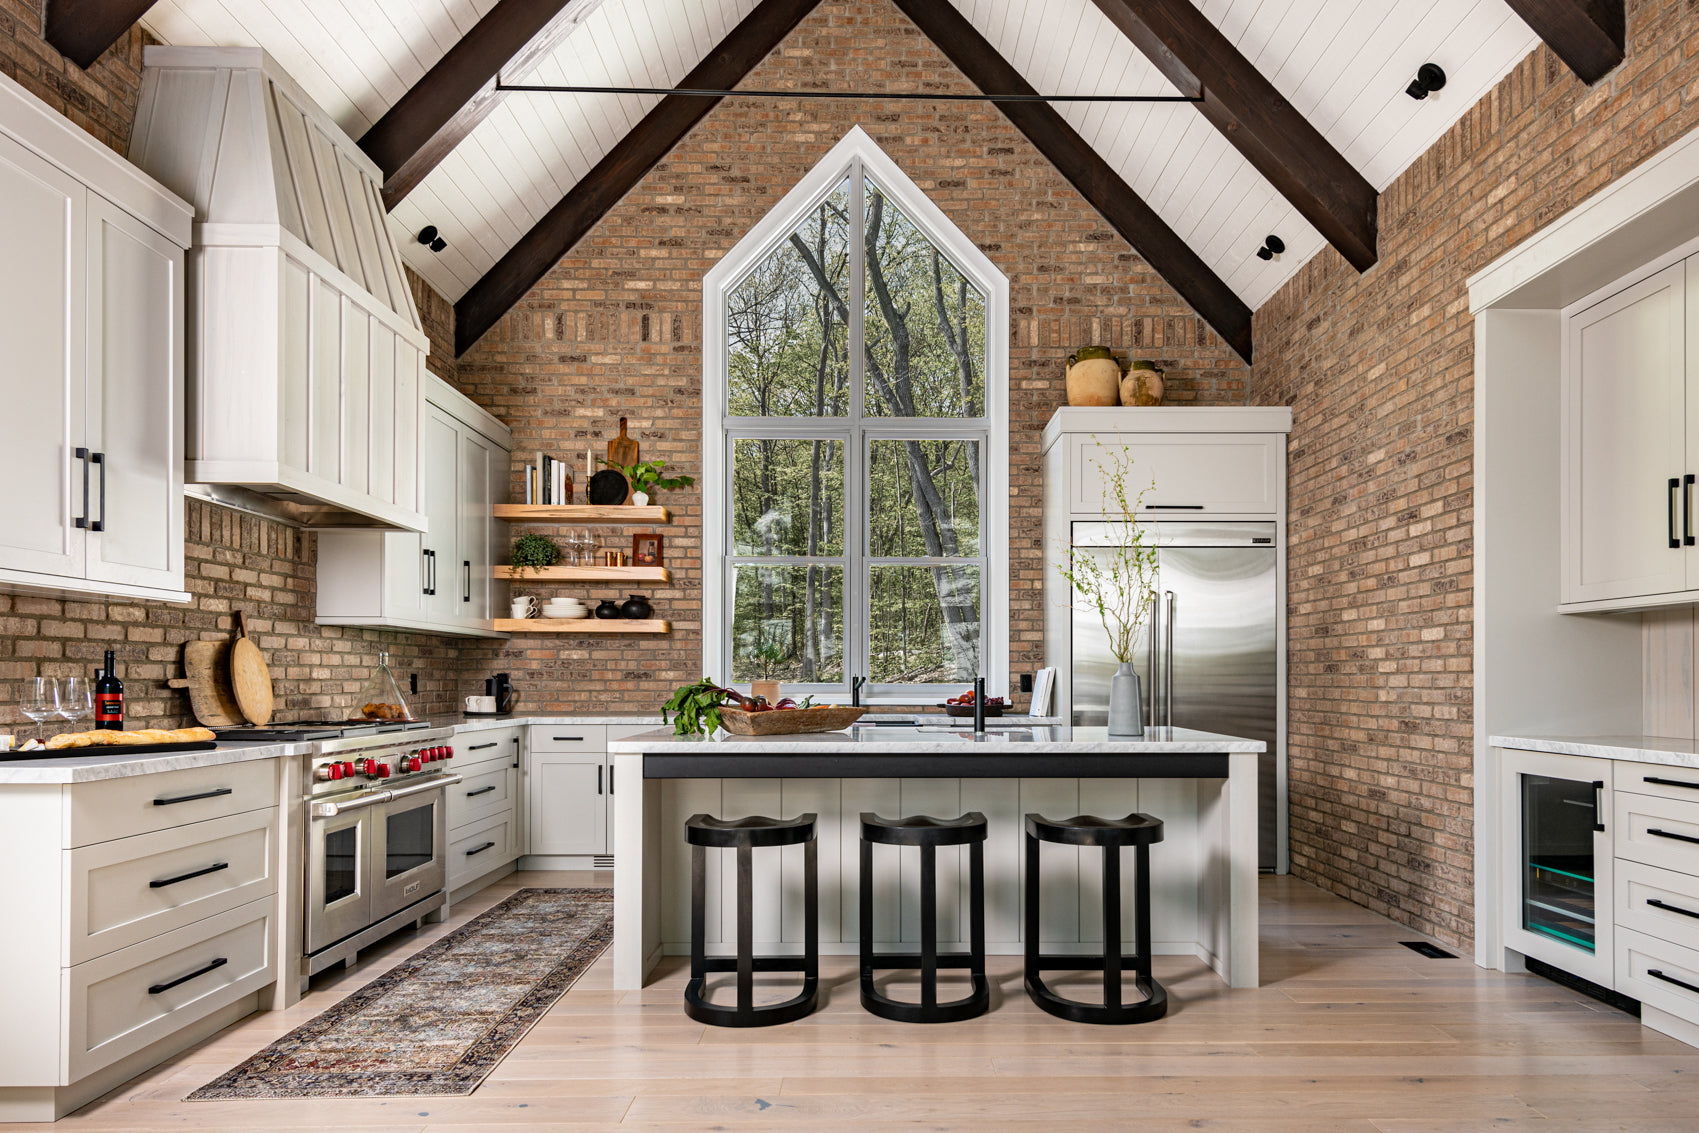 Exposed brick and off white cabinets in kitchen.